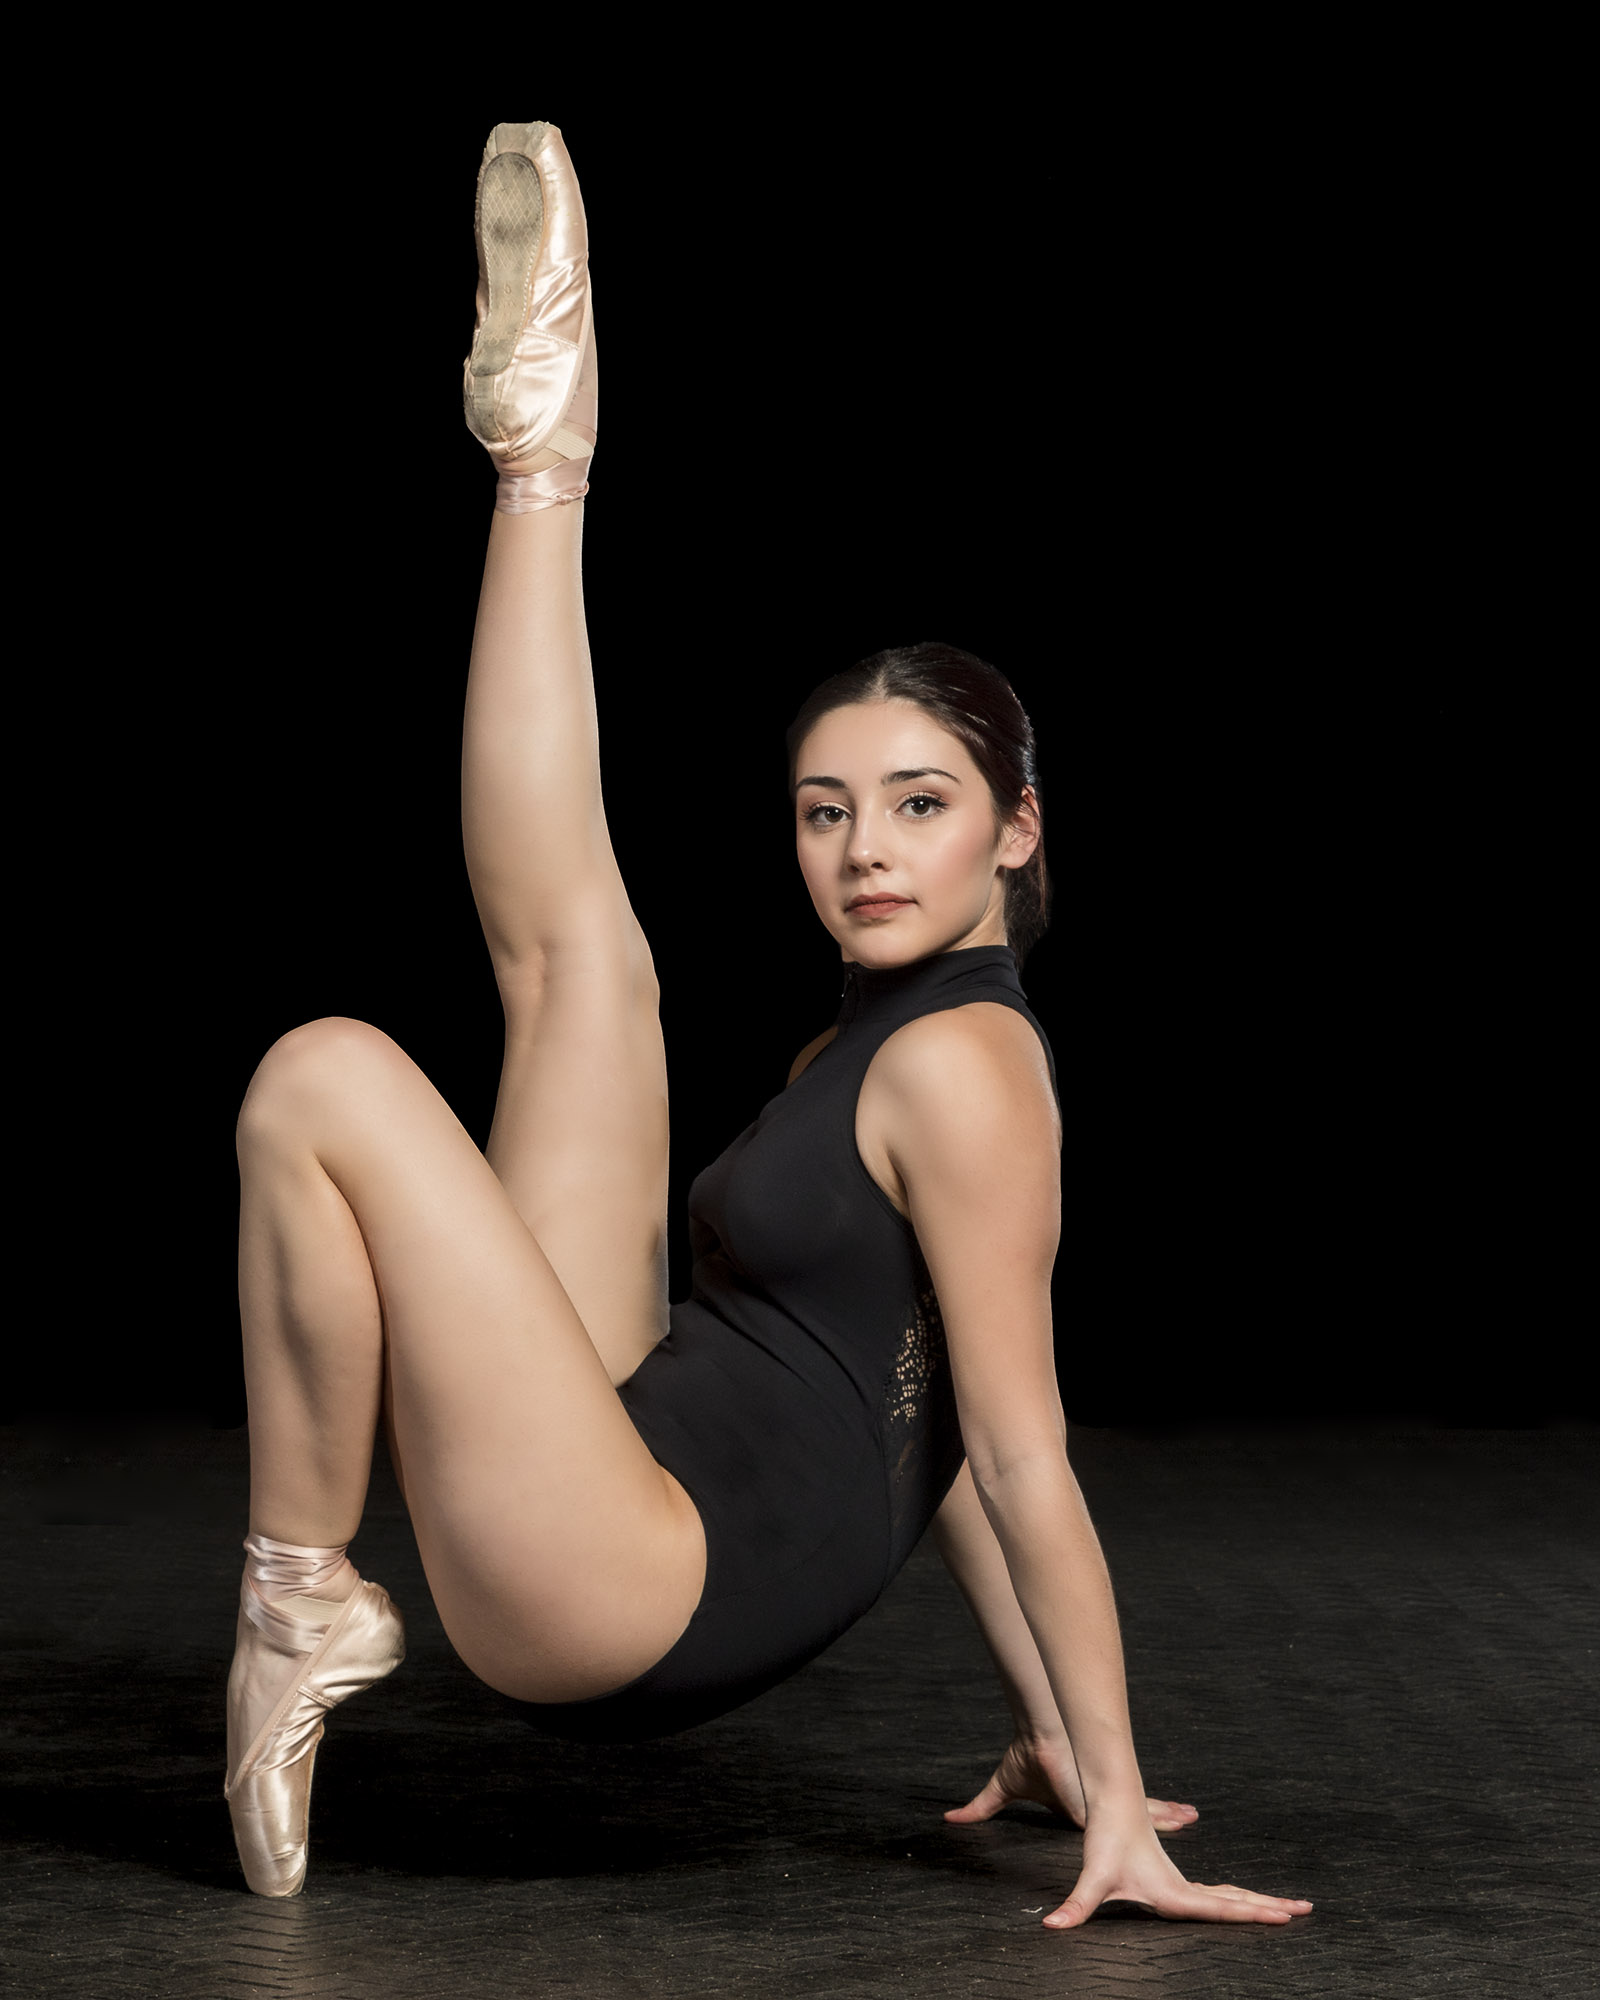 Simple stretch en pointe.